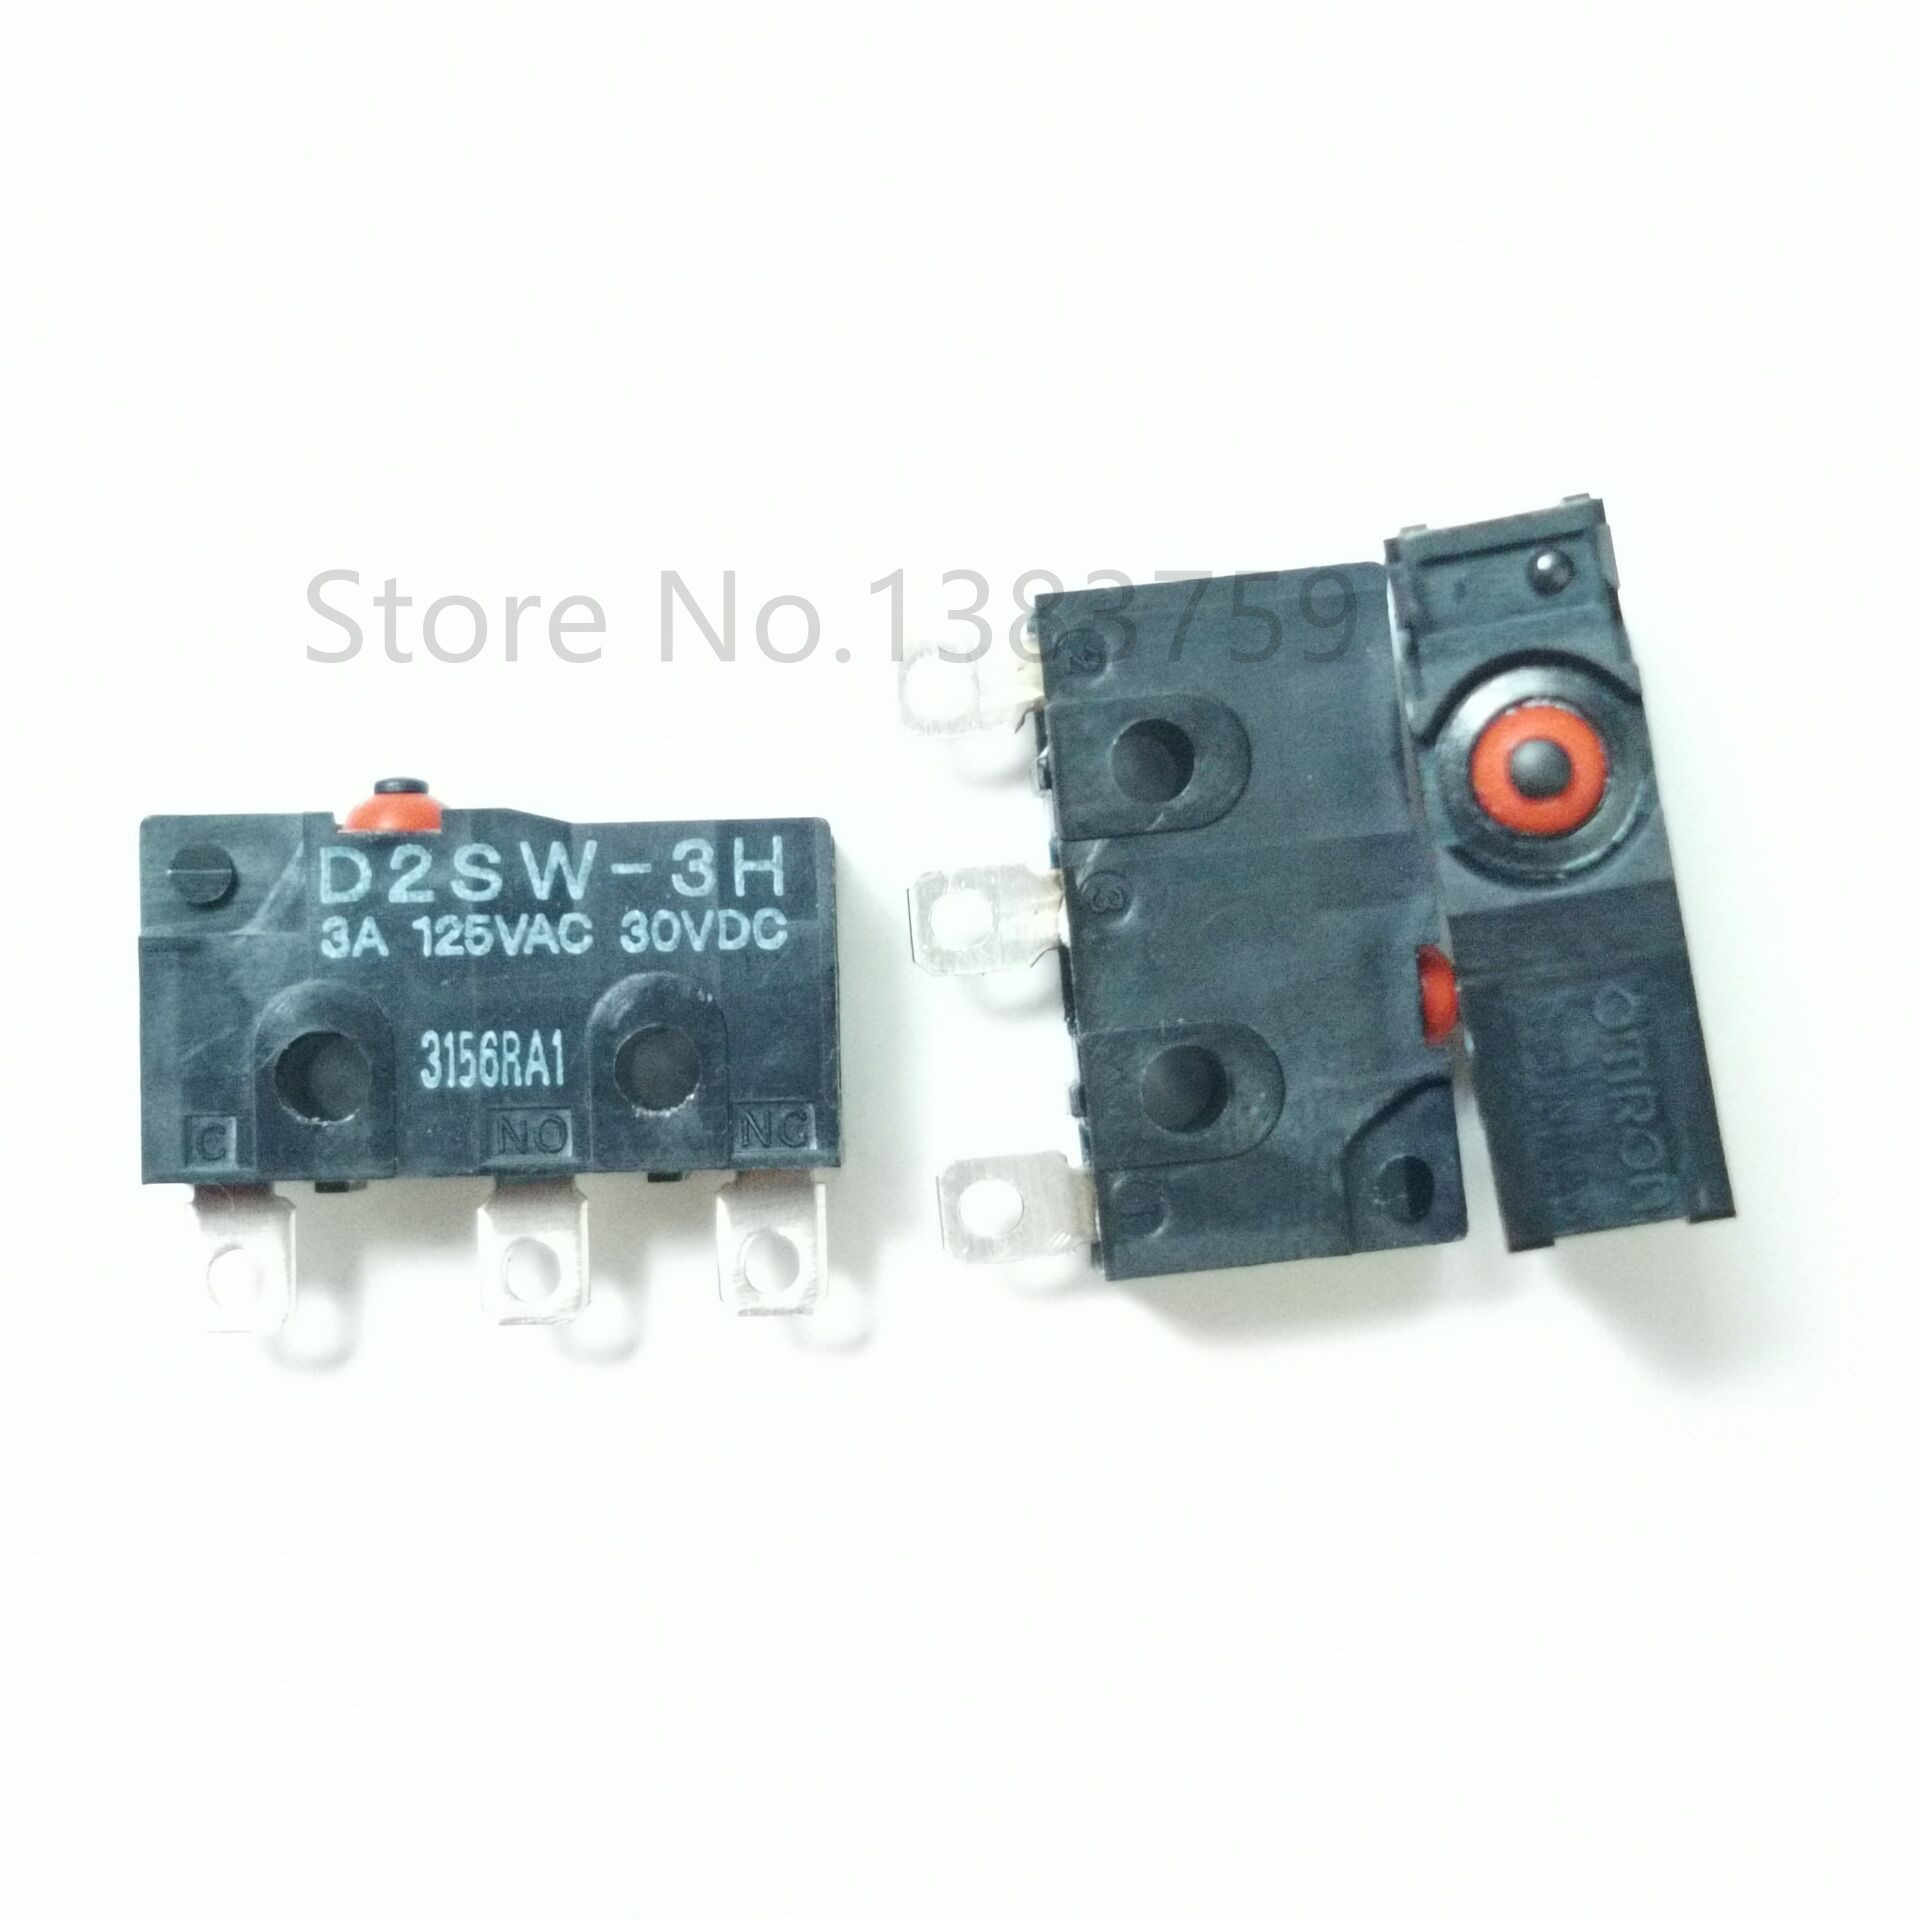 D2SW-3H Sealed 3 Kaki Light Touch Micro Switch Tahan Air dan Tahan Debu 3A 125V